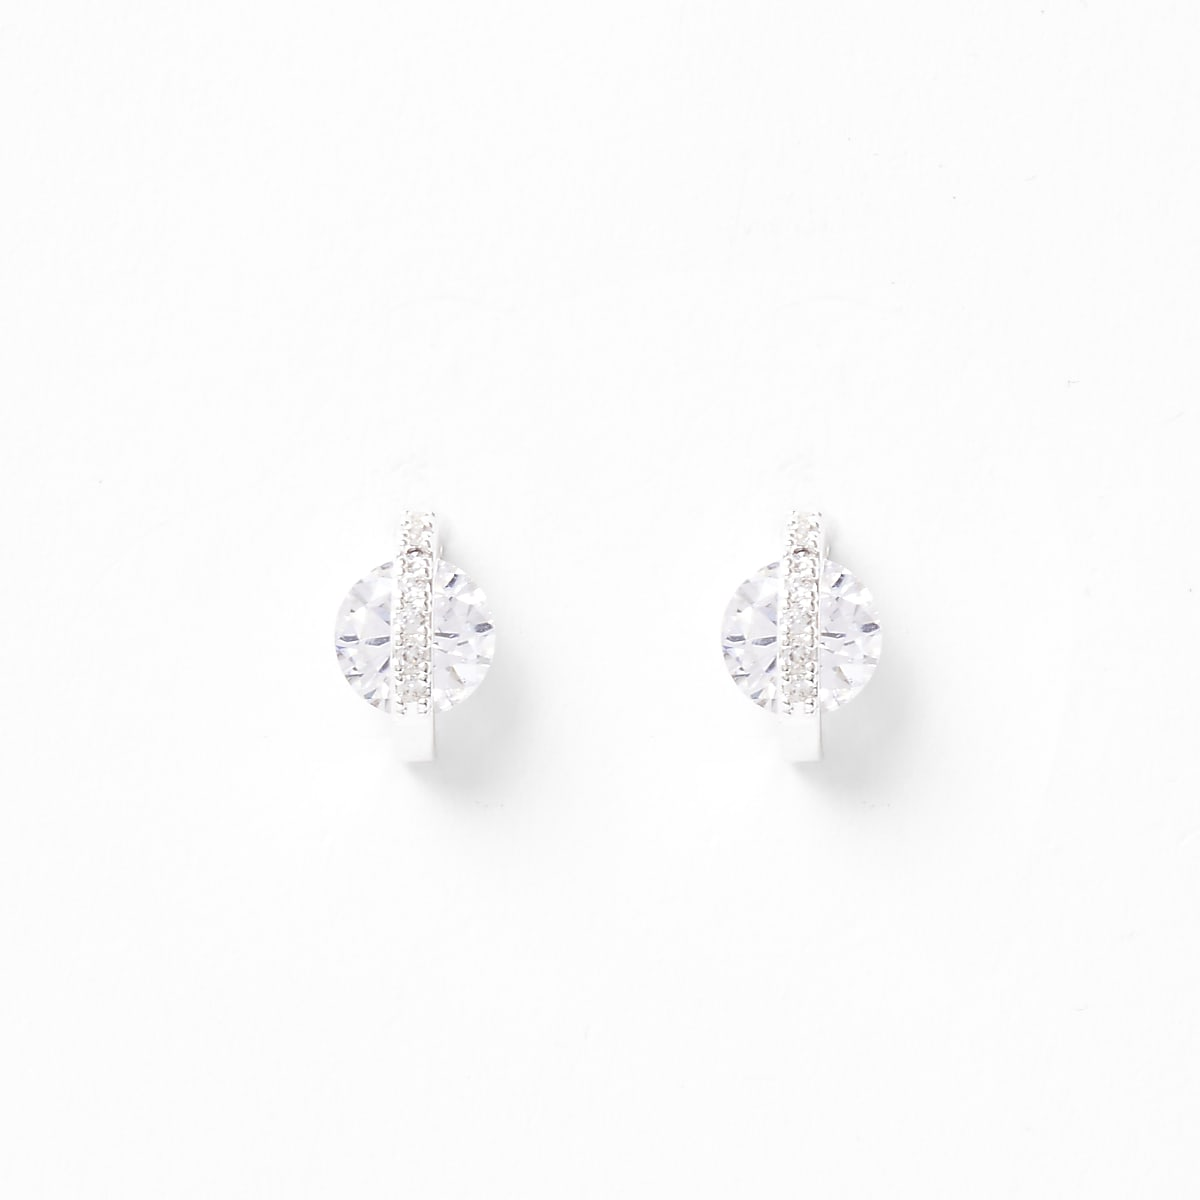 Silver diamante jewel paved stud earrings